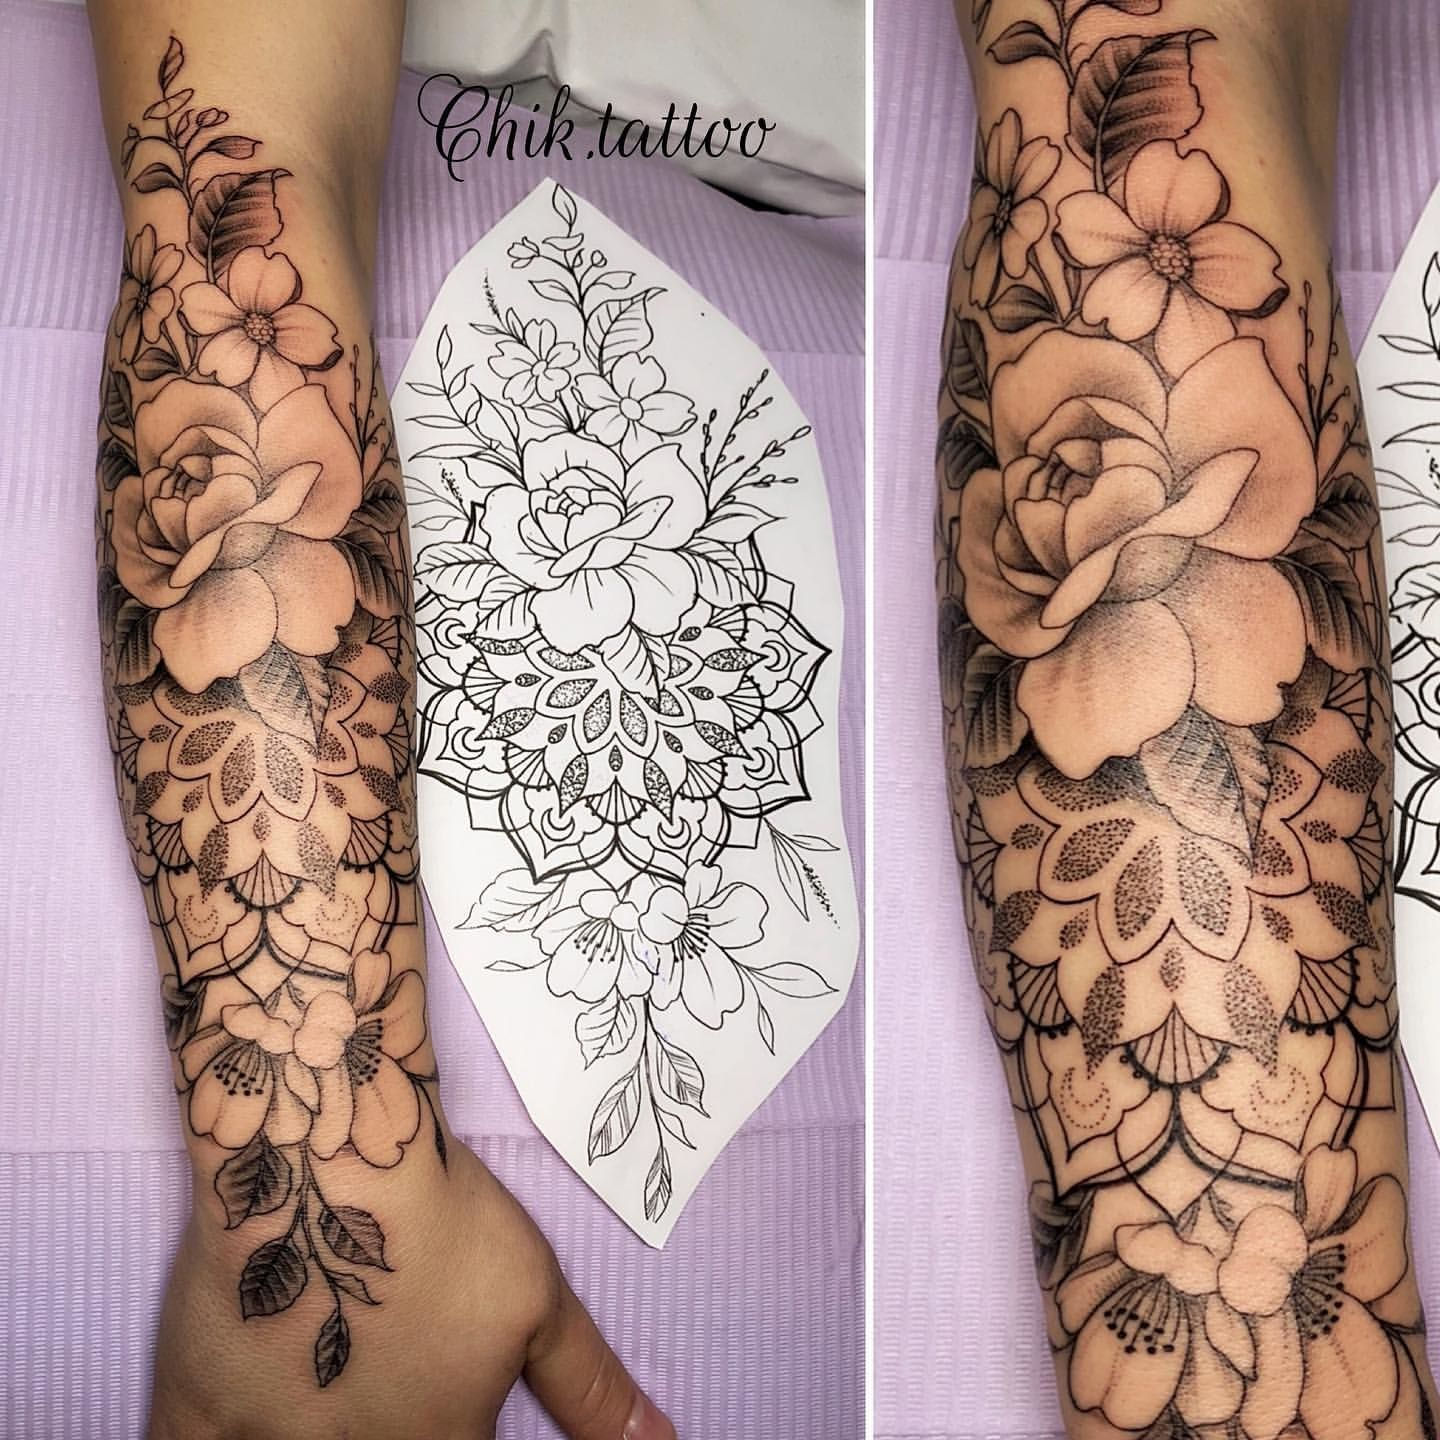 100 The Most Beautiful Flower Tattoo Designs Small Forearm Tattoos Flower Leg Tattoos Tattoos